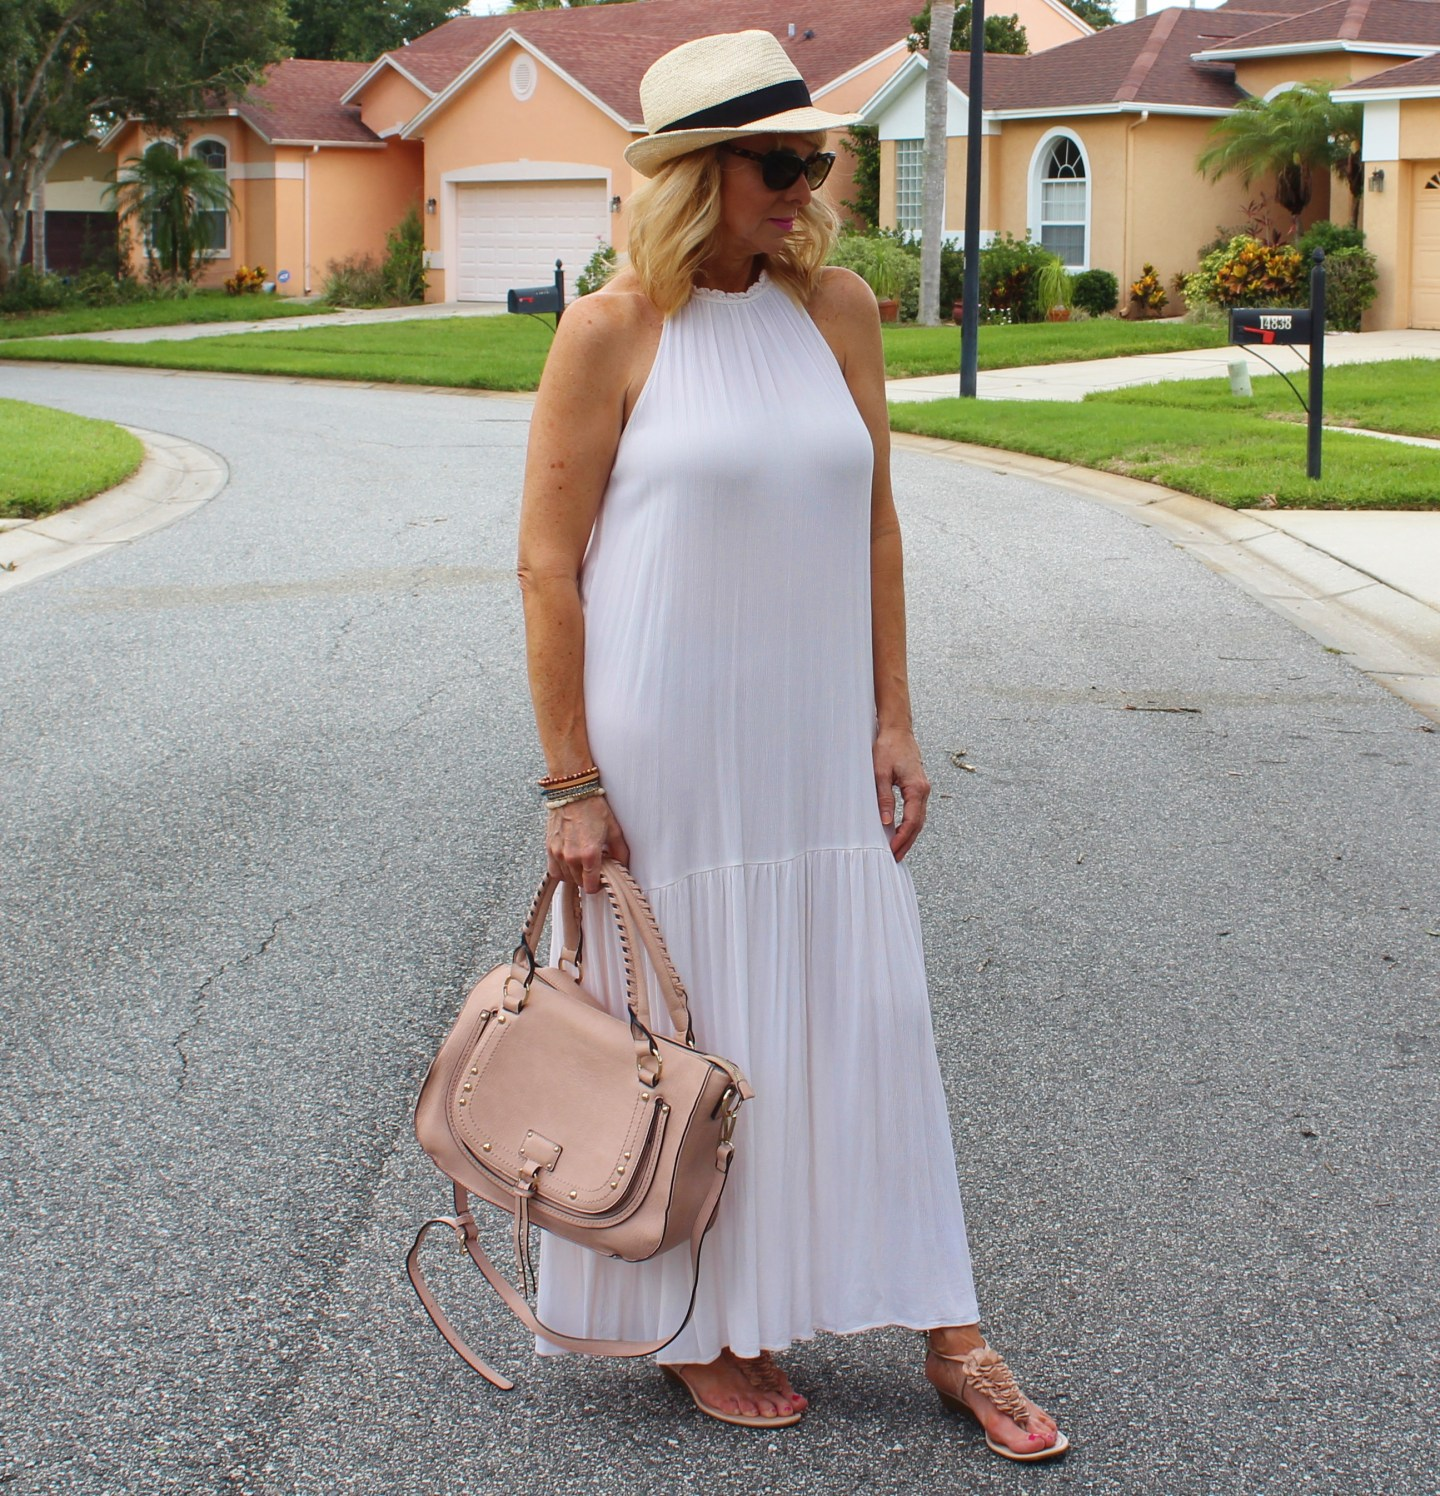 H&M Maxi dress and Fedora